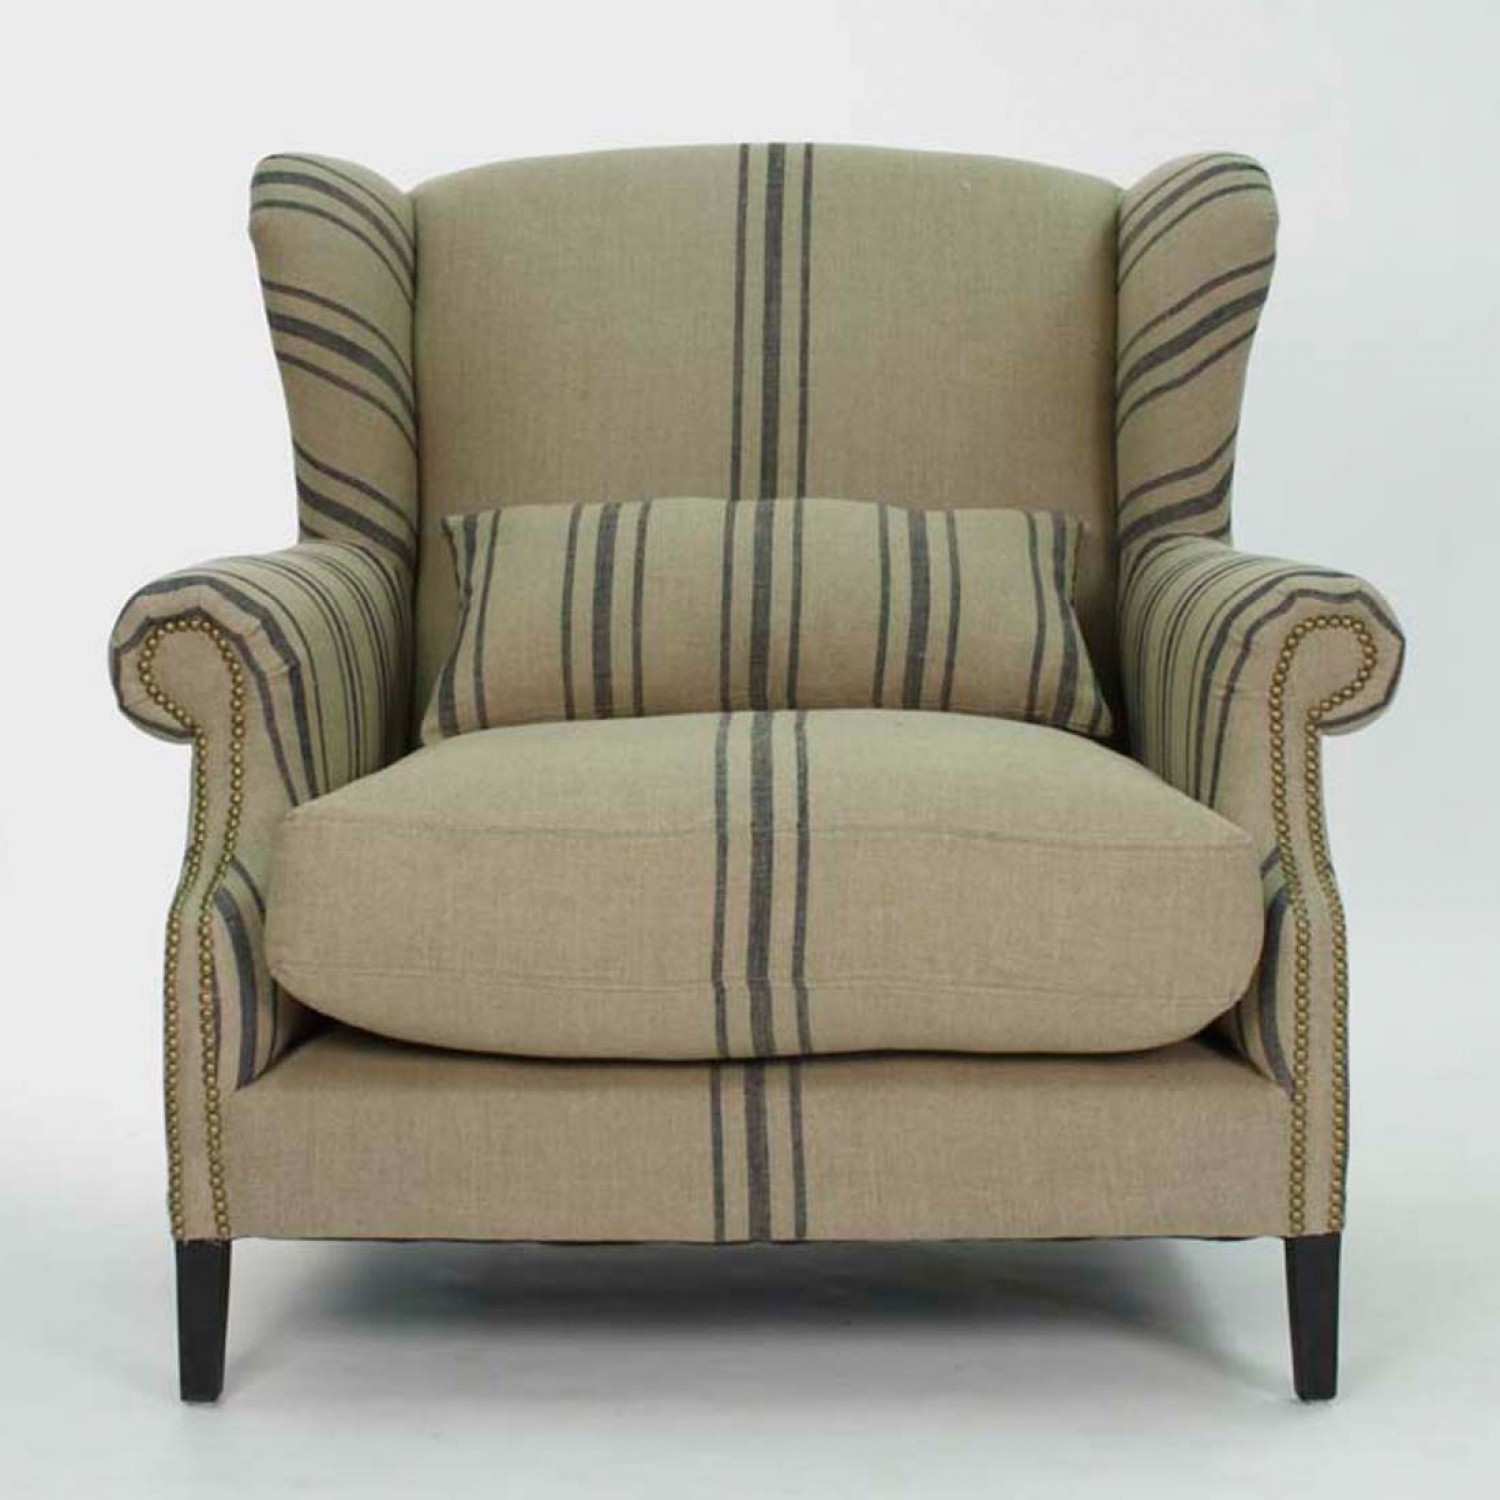 k-ikea-wingback-chairs